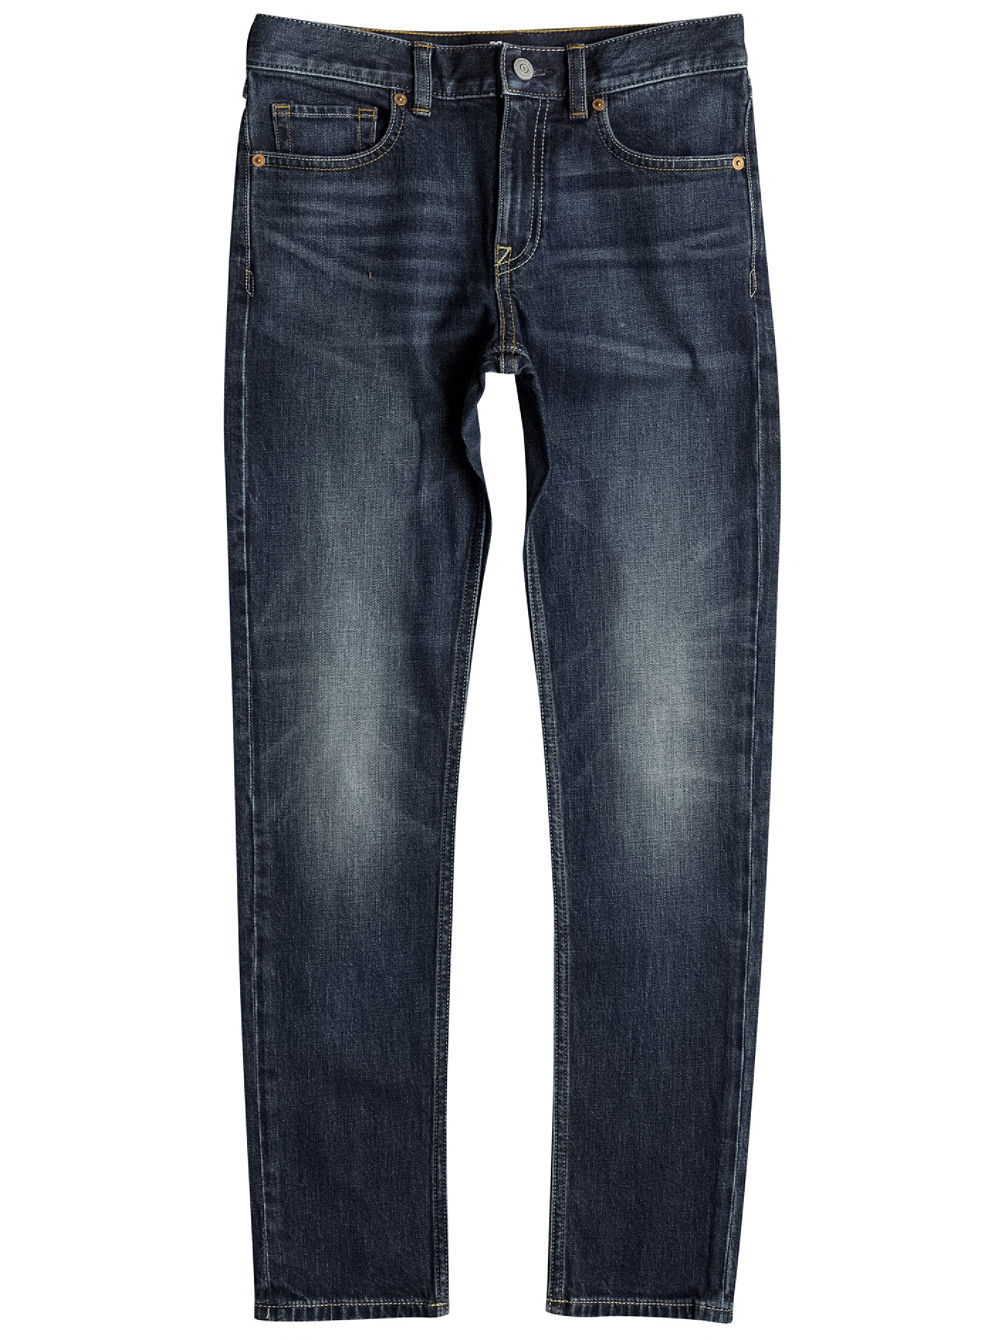 Buy Dc Washed Skinny Jeans Boys Online At Blue Tomato Com